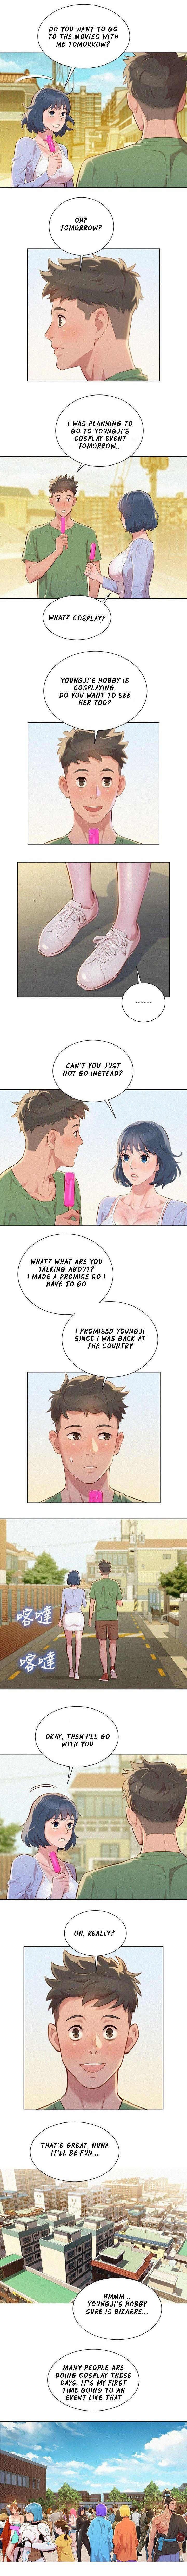 What do you Take me For? Ch.40/? 382